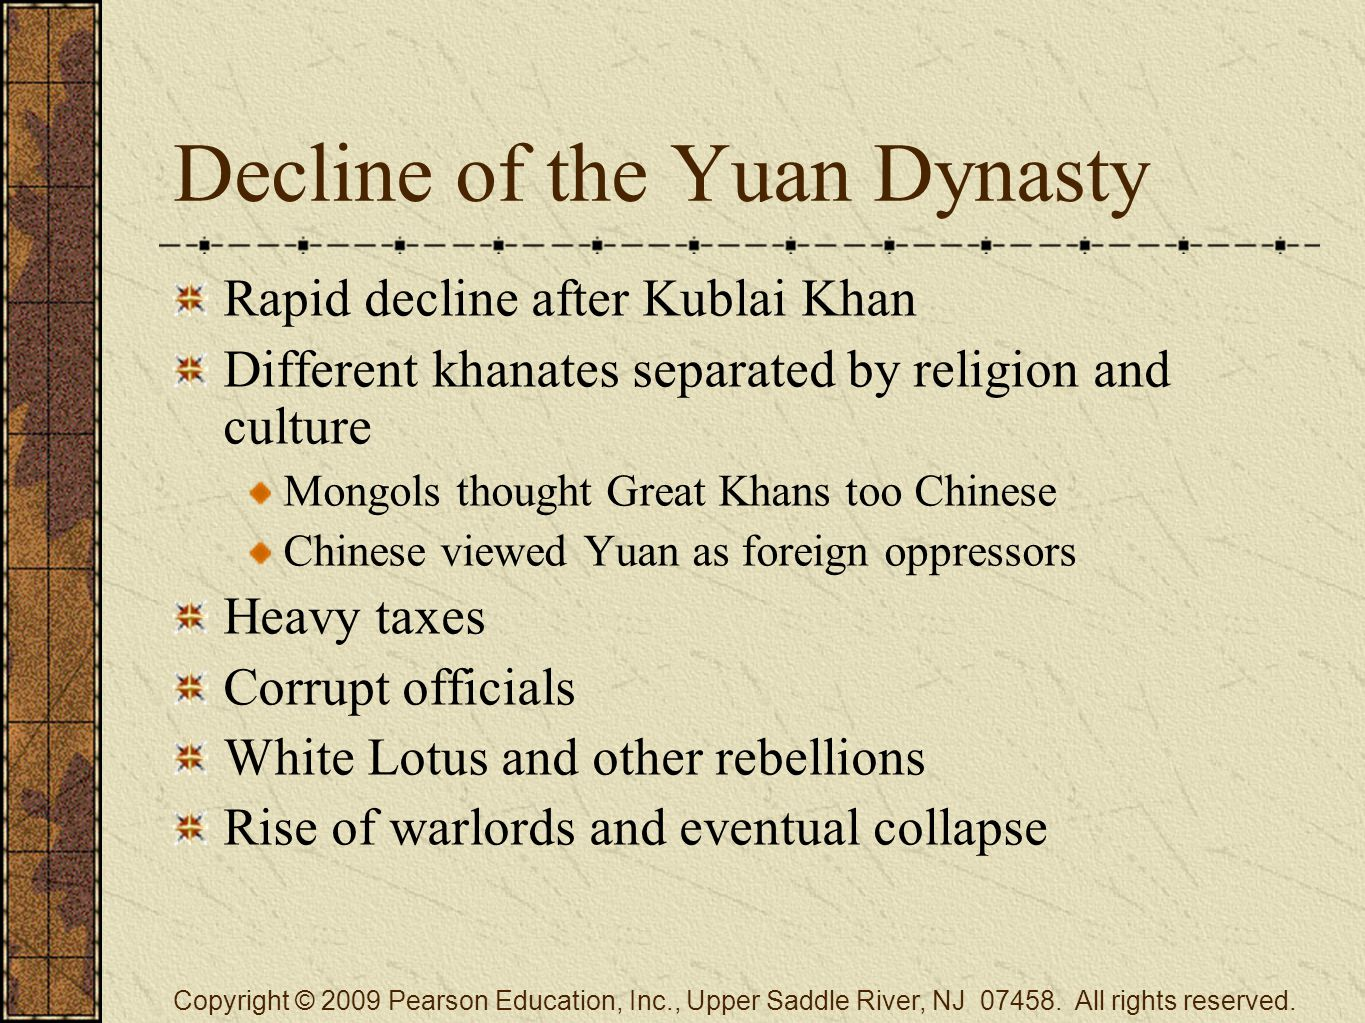 Decline of the Yuan Dynasty Rapid decline after Kublai Khan Different khanates separated by religion and culture Mongols thought Great Khans too Chinese Chinese viewed Yuan as foreign oppressors Heavy taxes Corrupt officials White Lotus and other rebellions Rise of warlords and eventual collapse Copyright © 2009 Pearson Education, Inc., Upper Saddle River, NJ 07458.